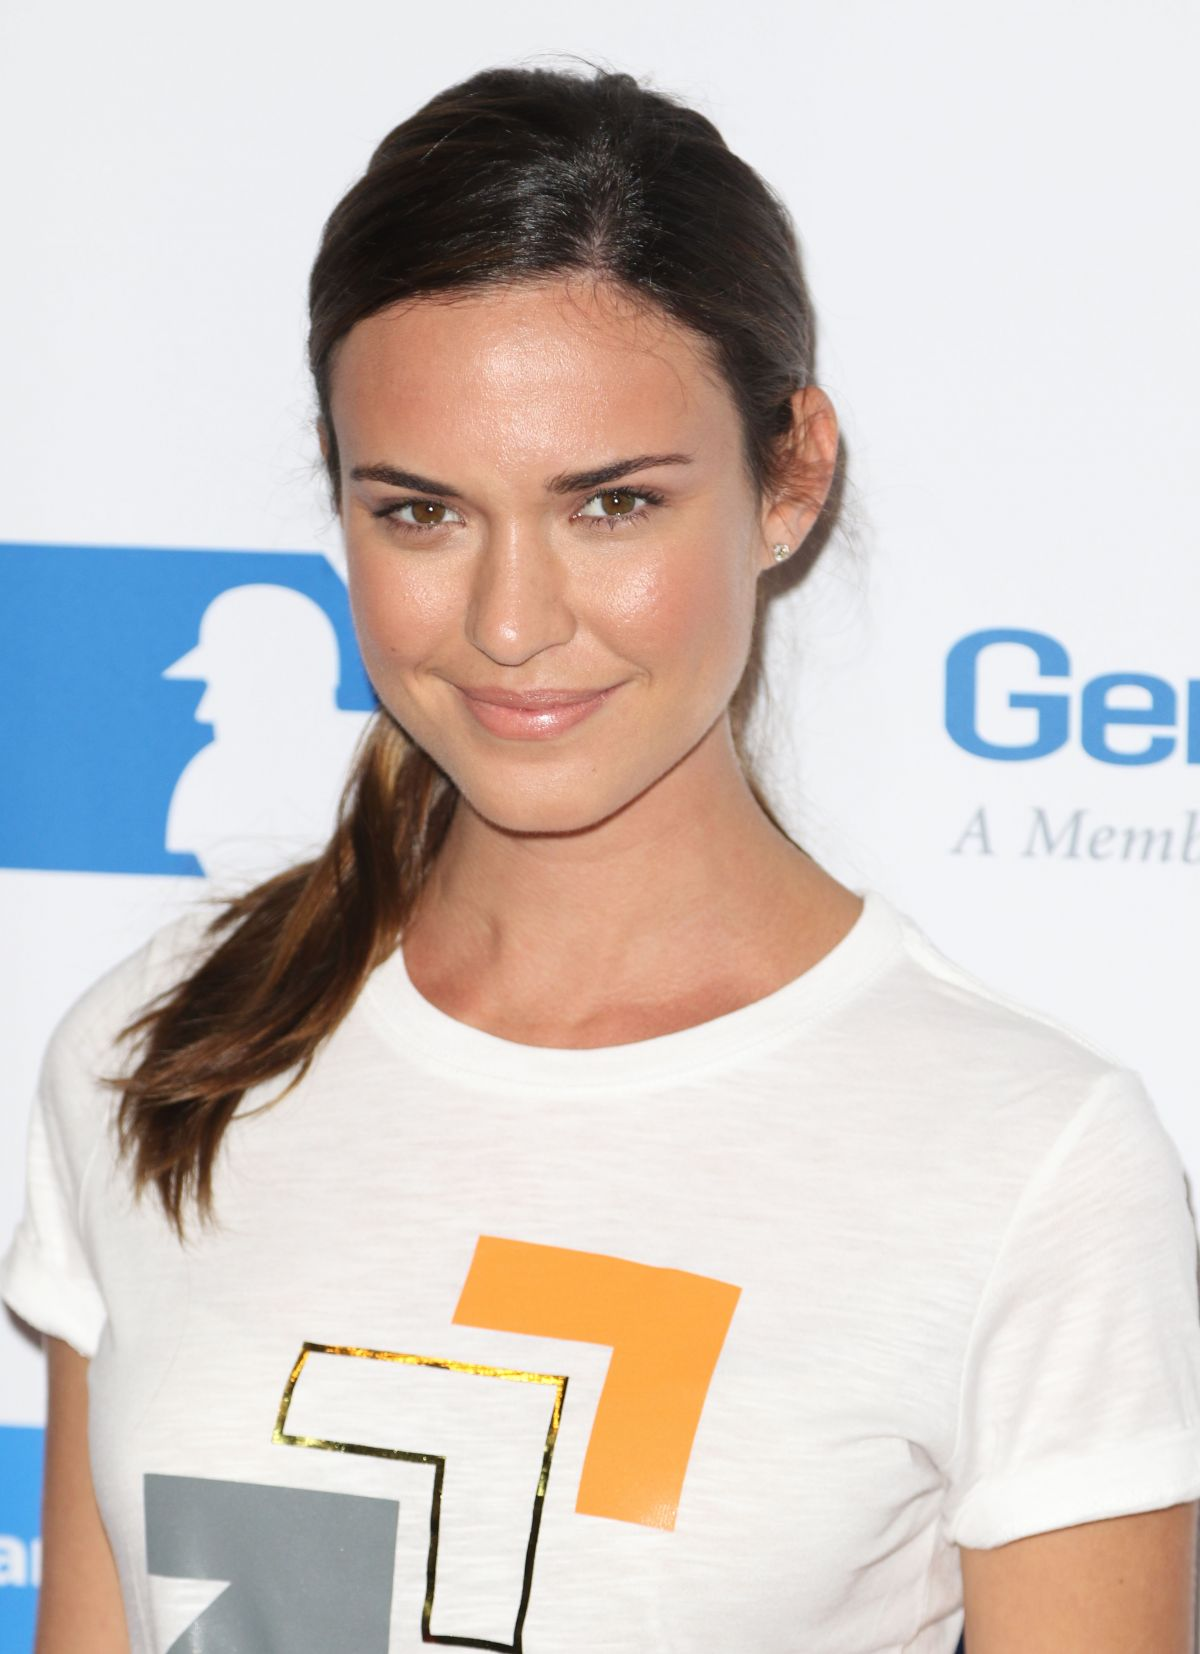 Odette Annable At 5th Biennial Stand Up To Cancer at Walt Disney Concert Hall in Los Angeles, CA   odette-annable-at-5th-biennial-stand-up-to-cancer-at-walt-disney-concert-hall-in-los-angeles-ca_1